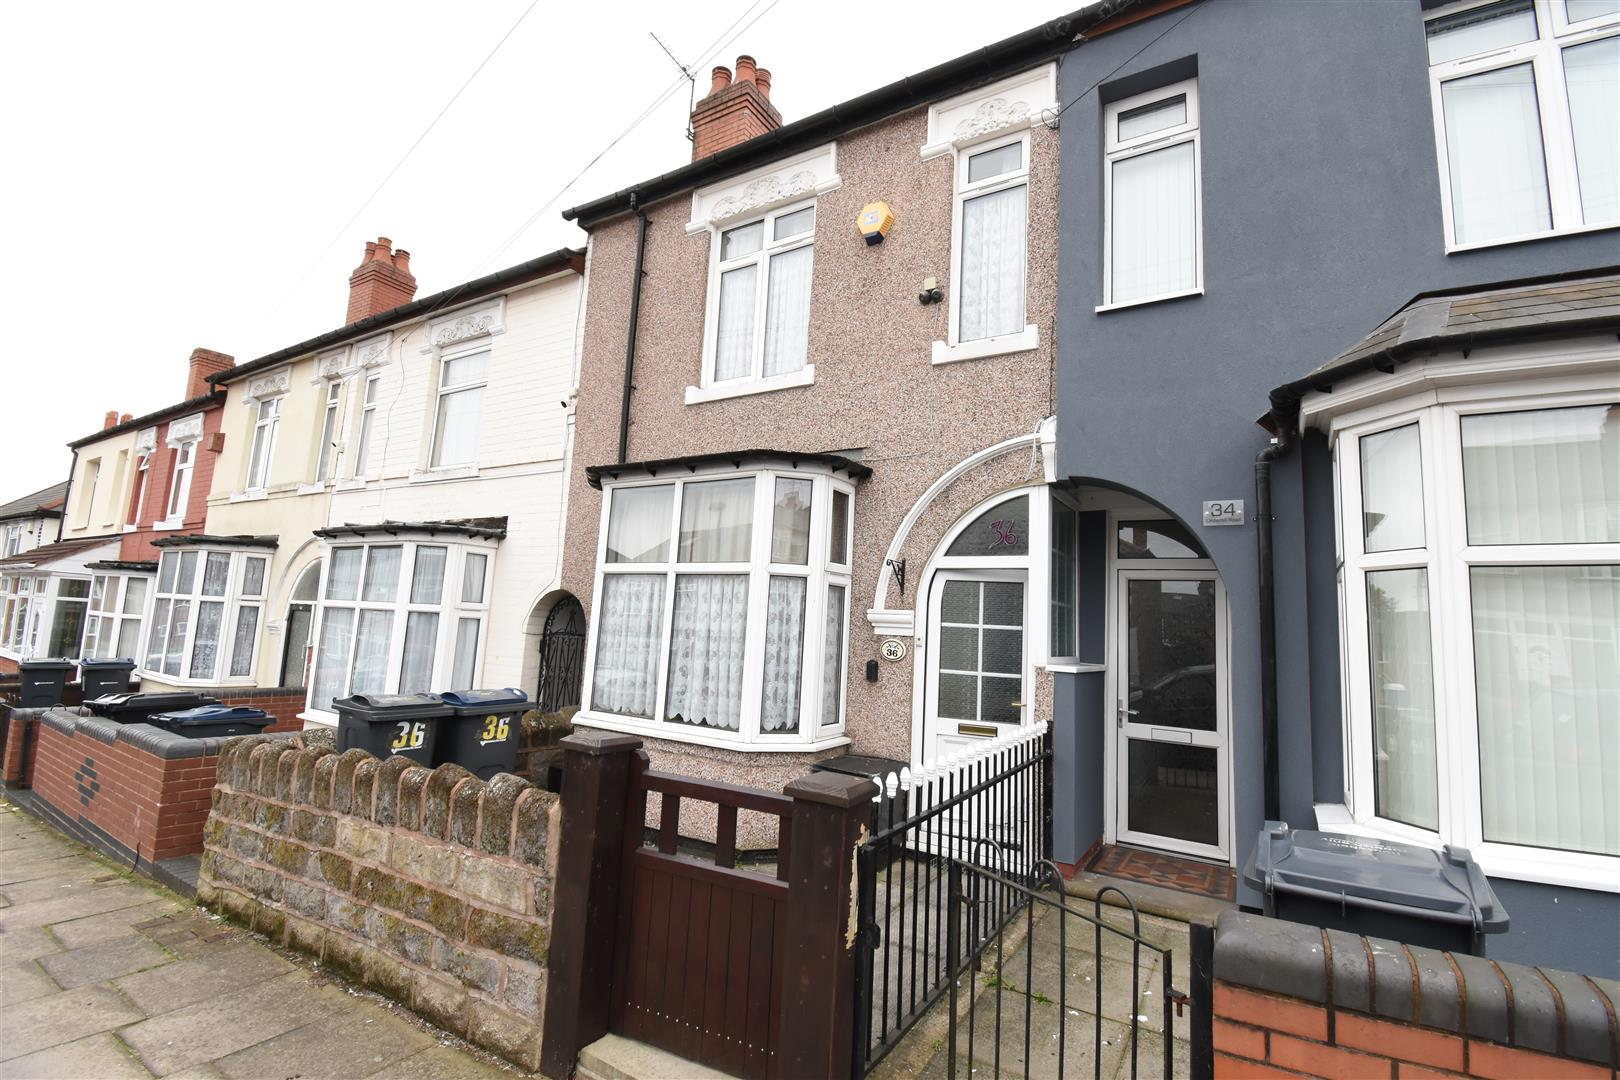 3 bed house for sale in Underhill Road, Birmingham, B8